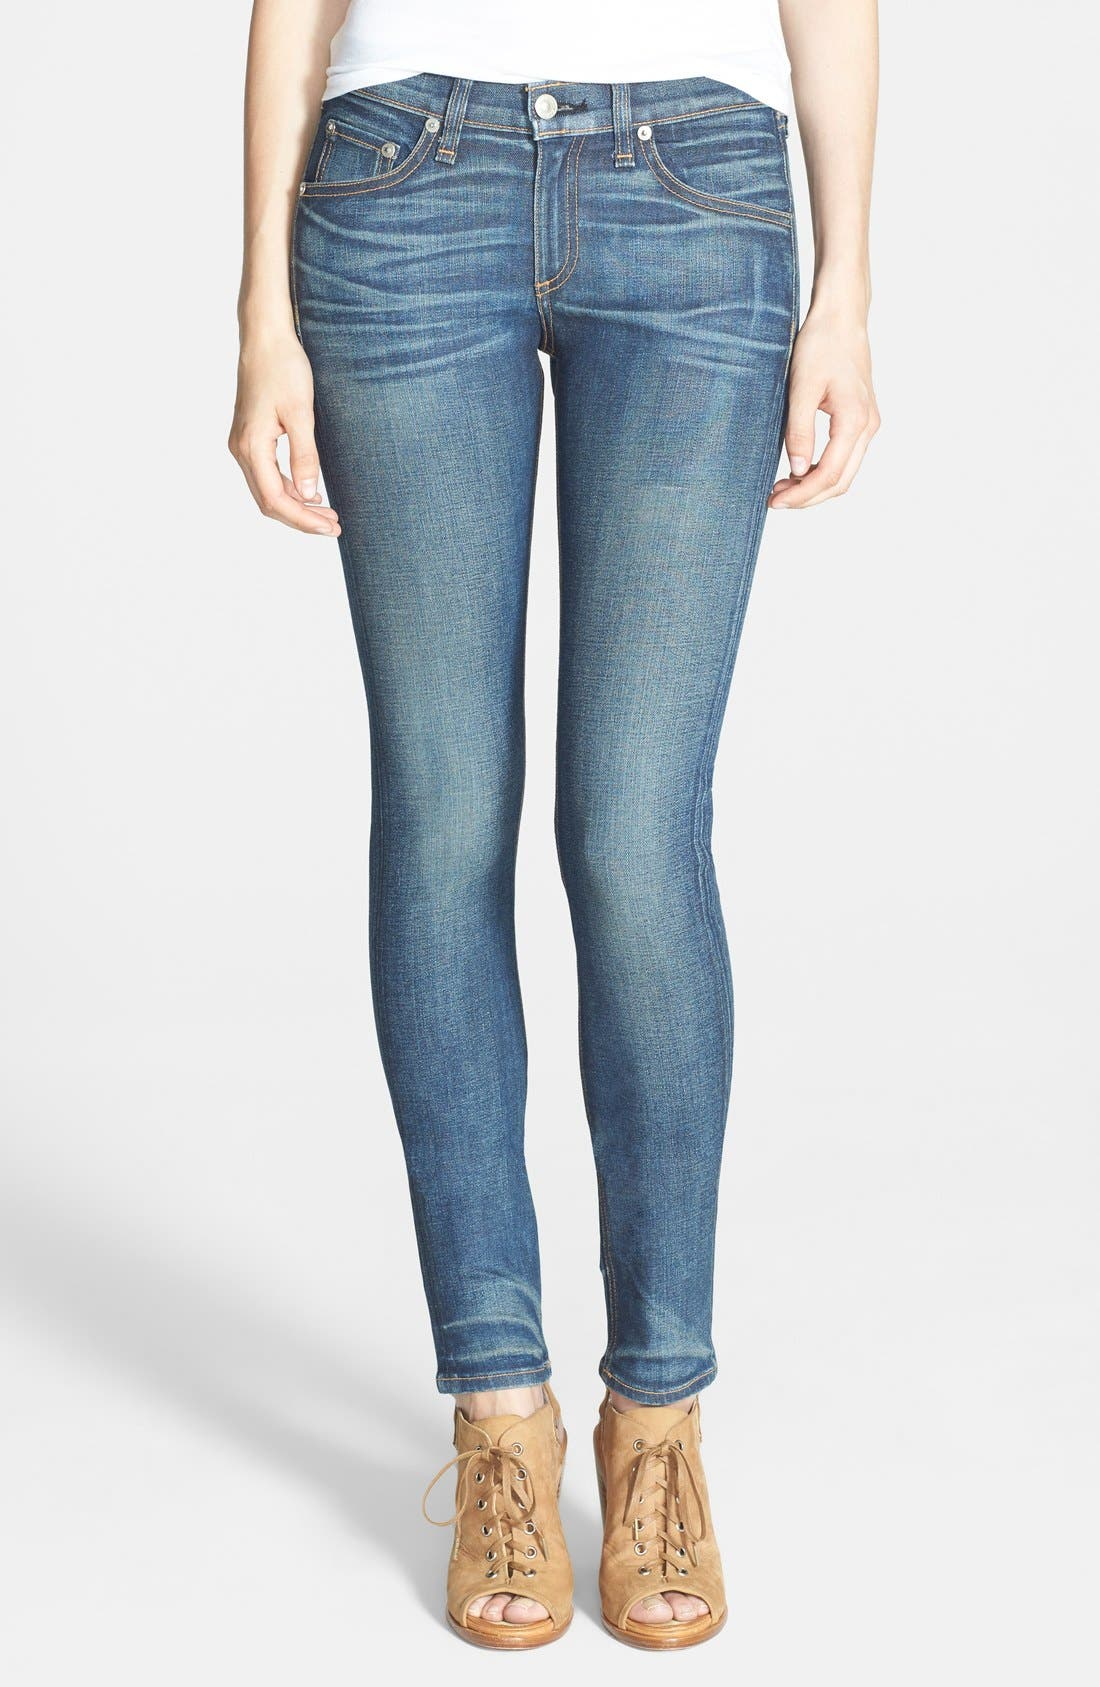 Alternate Image 1 Selected - rag & bone/JEAN Stretch Skinny Jeans (Kingsland)